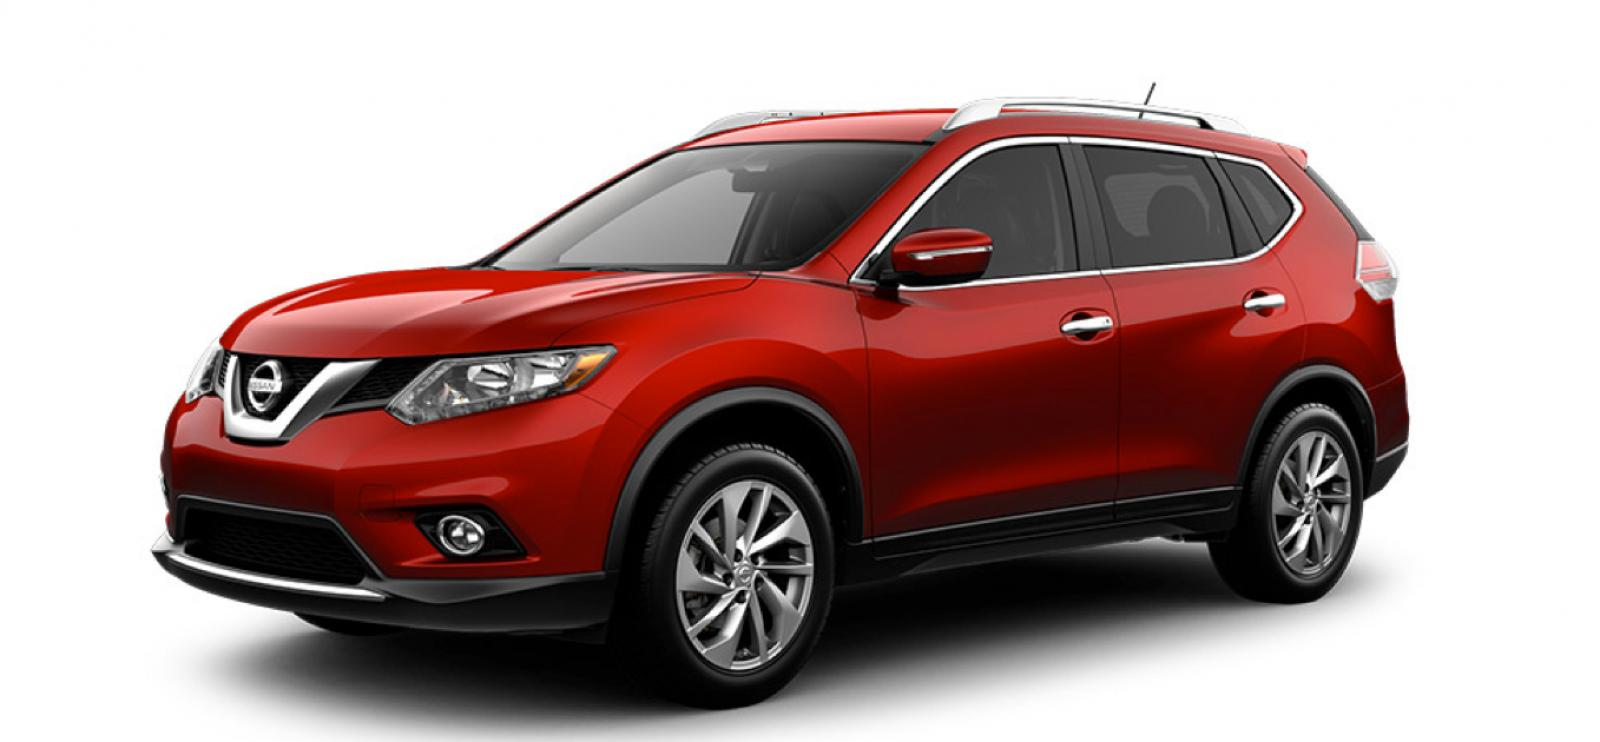 2015 nissan rogue information and photos zombiedrive. Black Bedroom Furniture Sets. Home Design Ideas